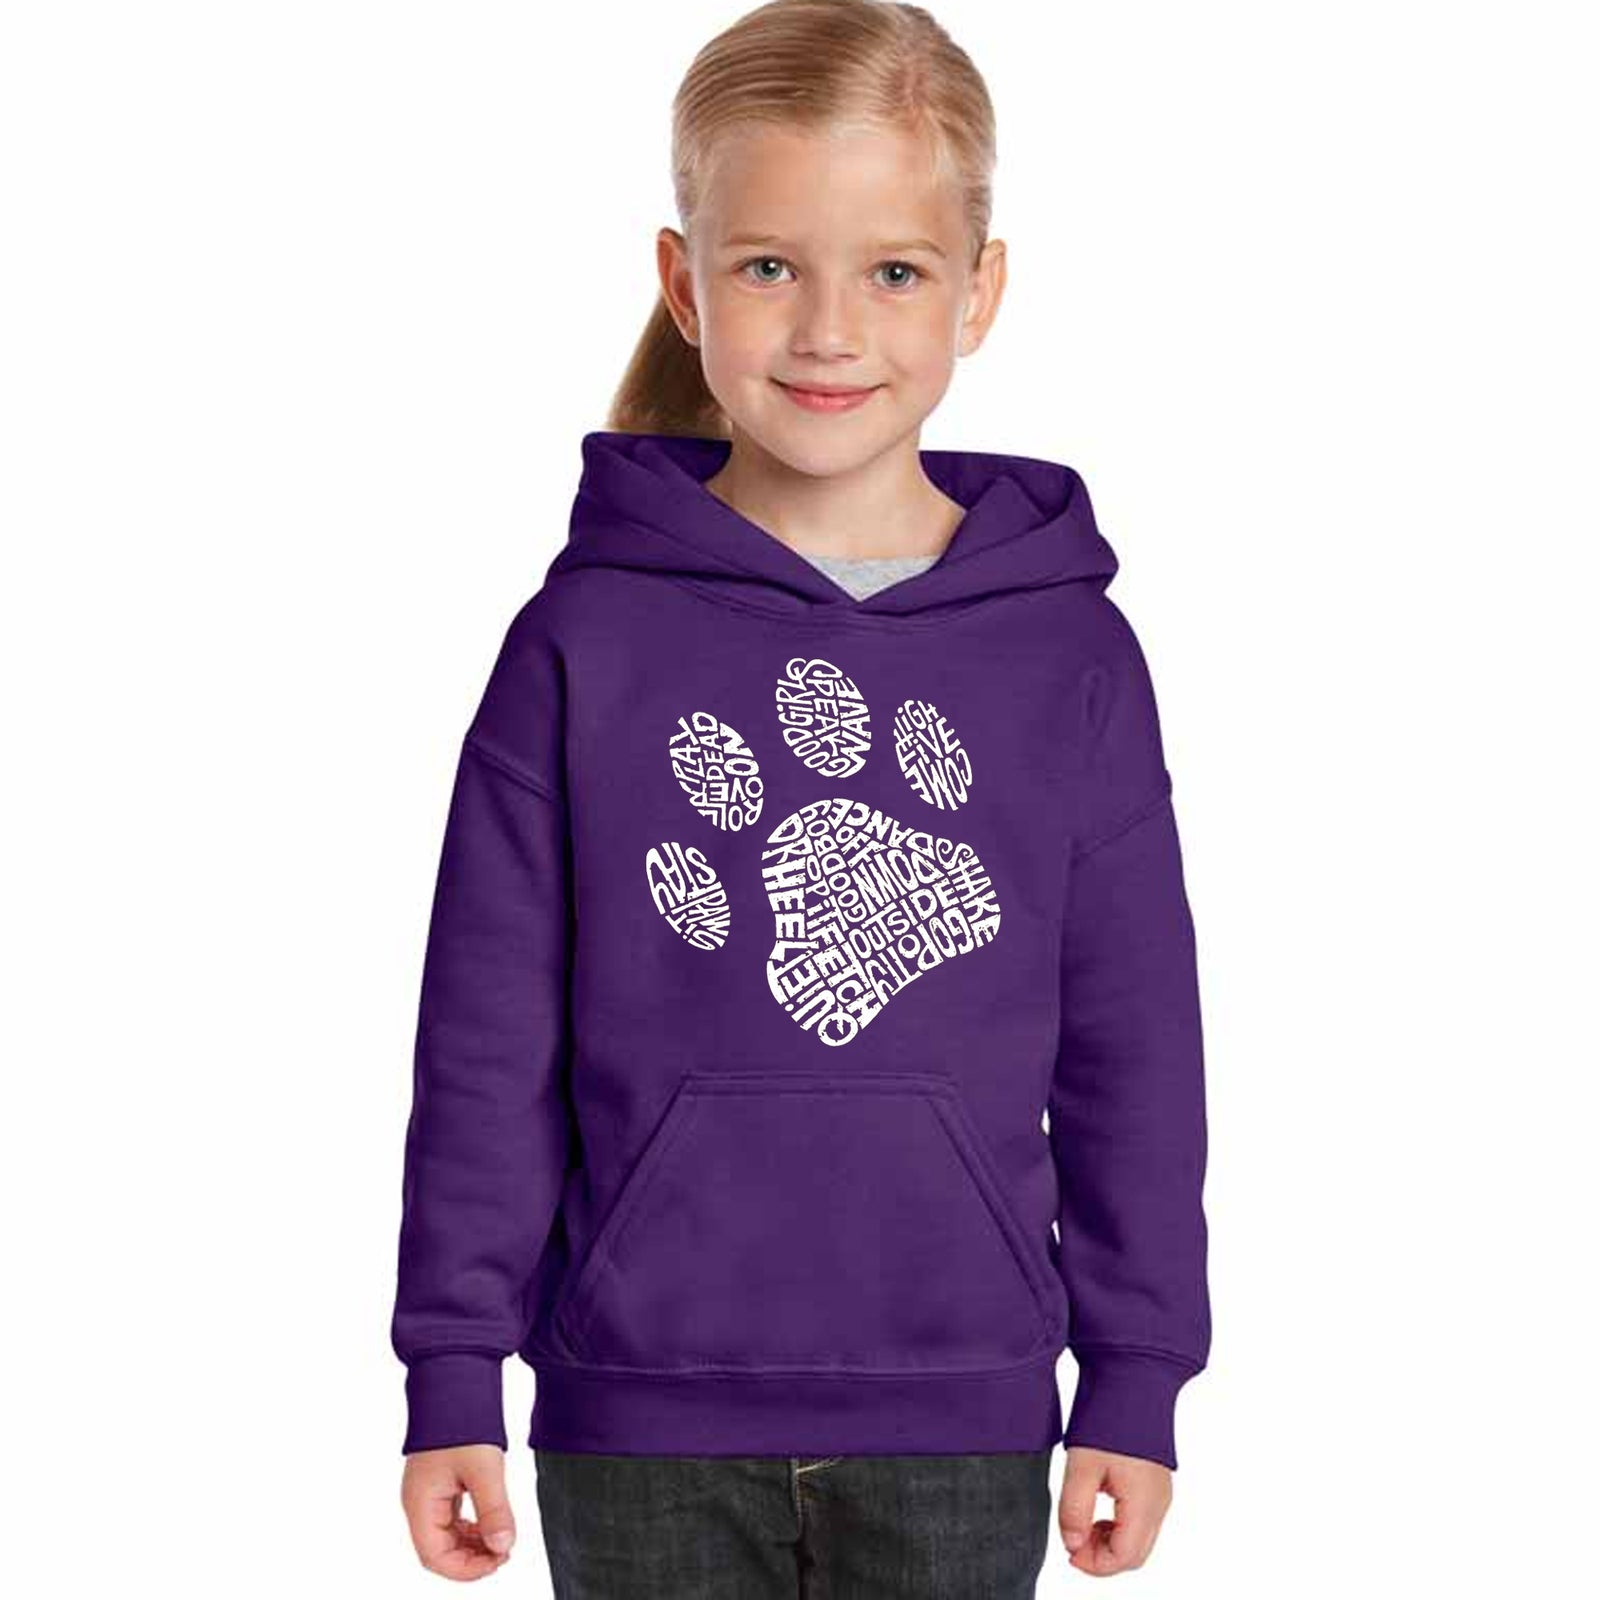 Girl's Hooded Sweatshirt - Dog Paw